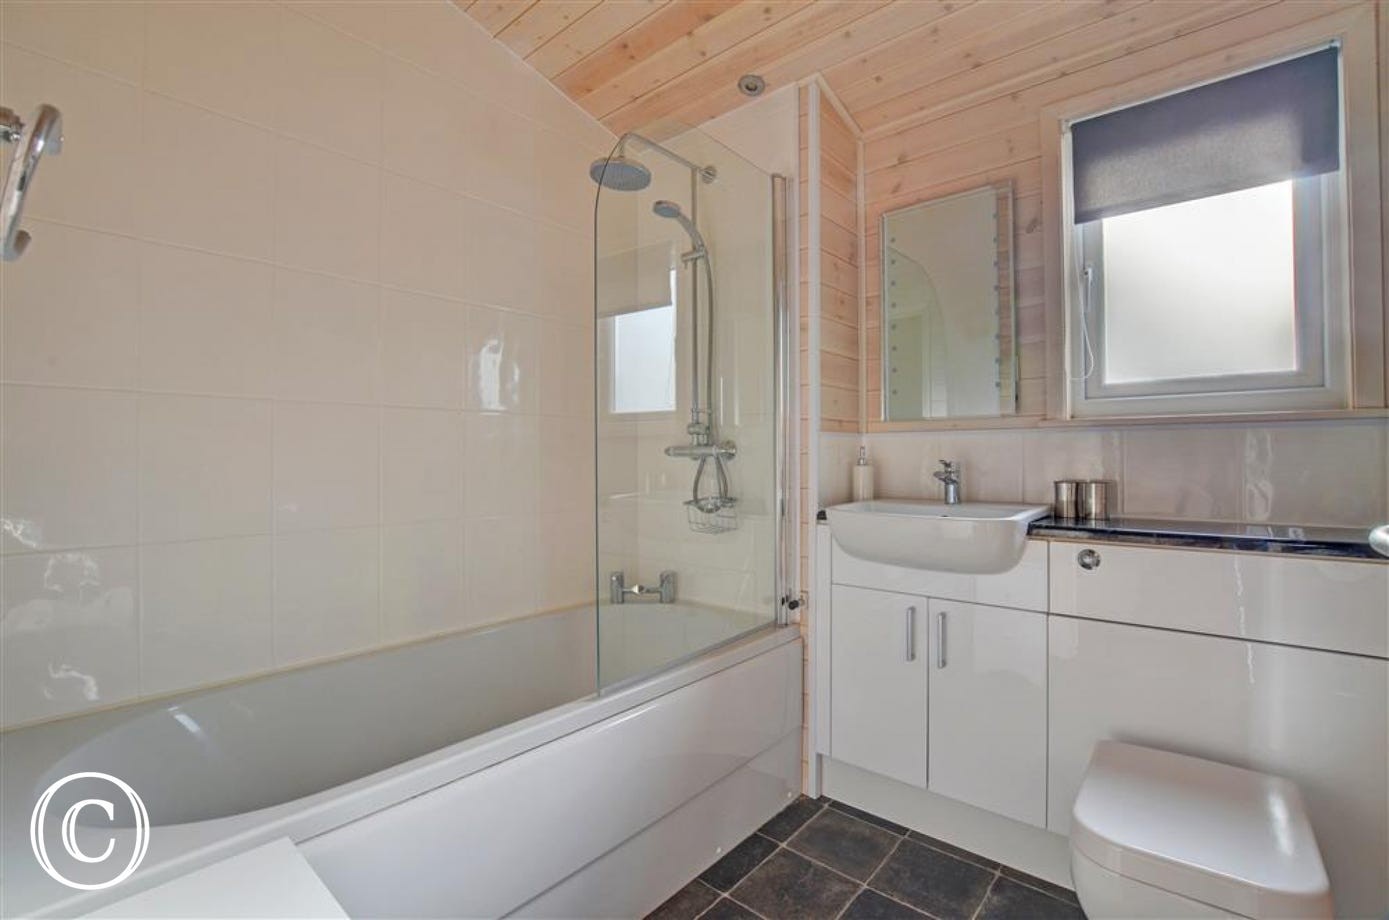 Lovely bathroom with bath and overbath shower